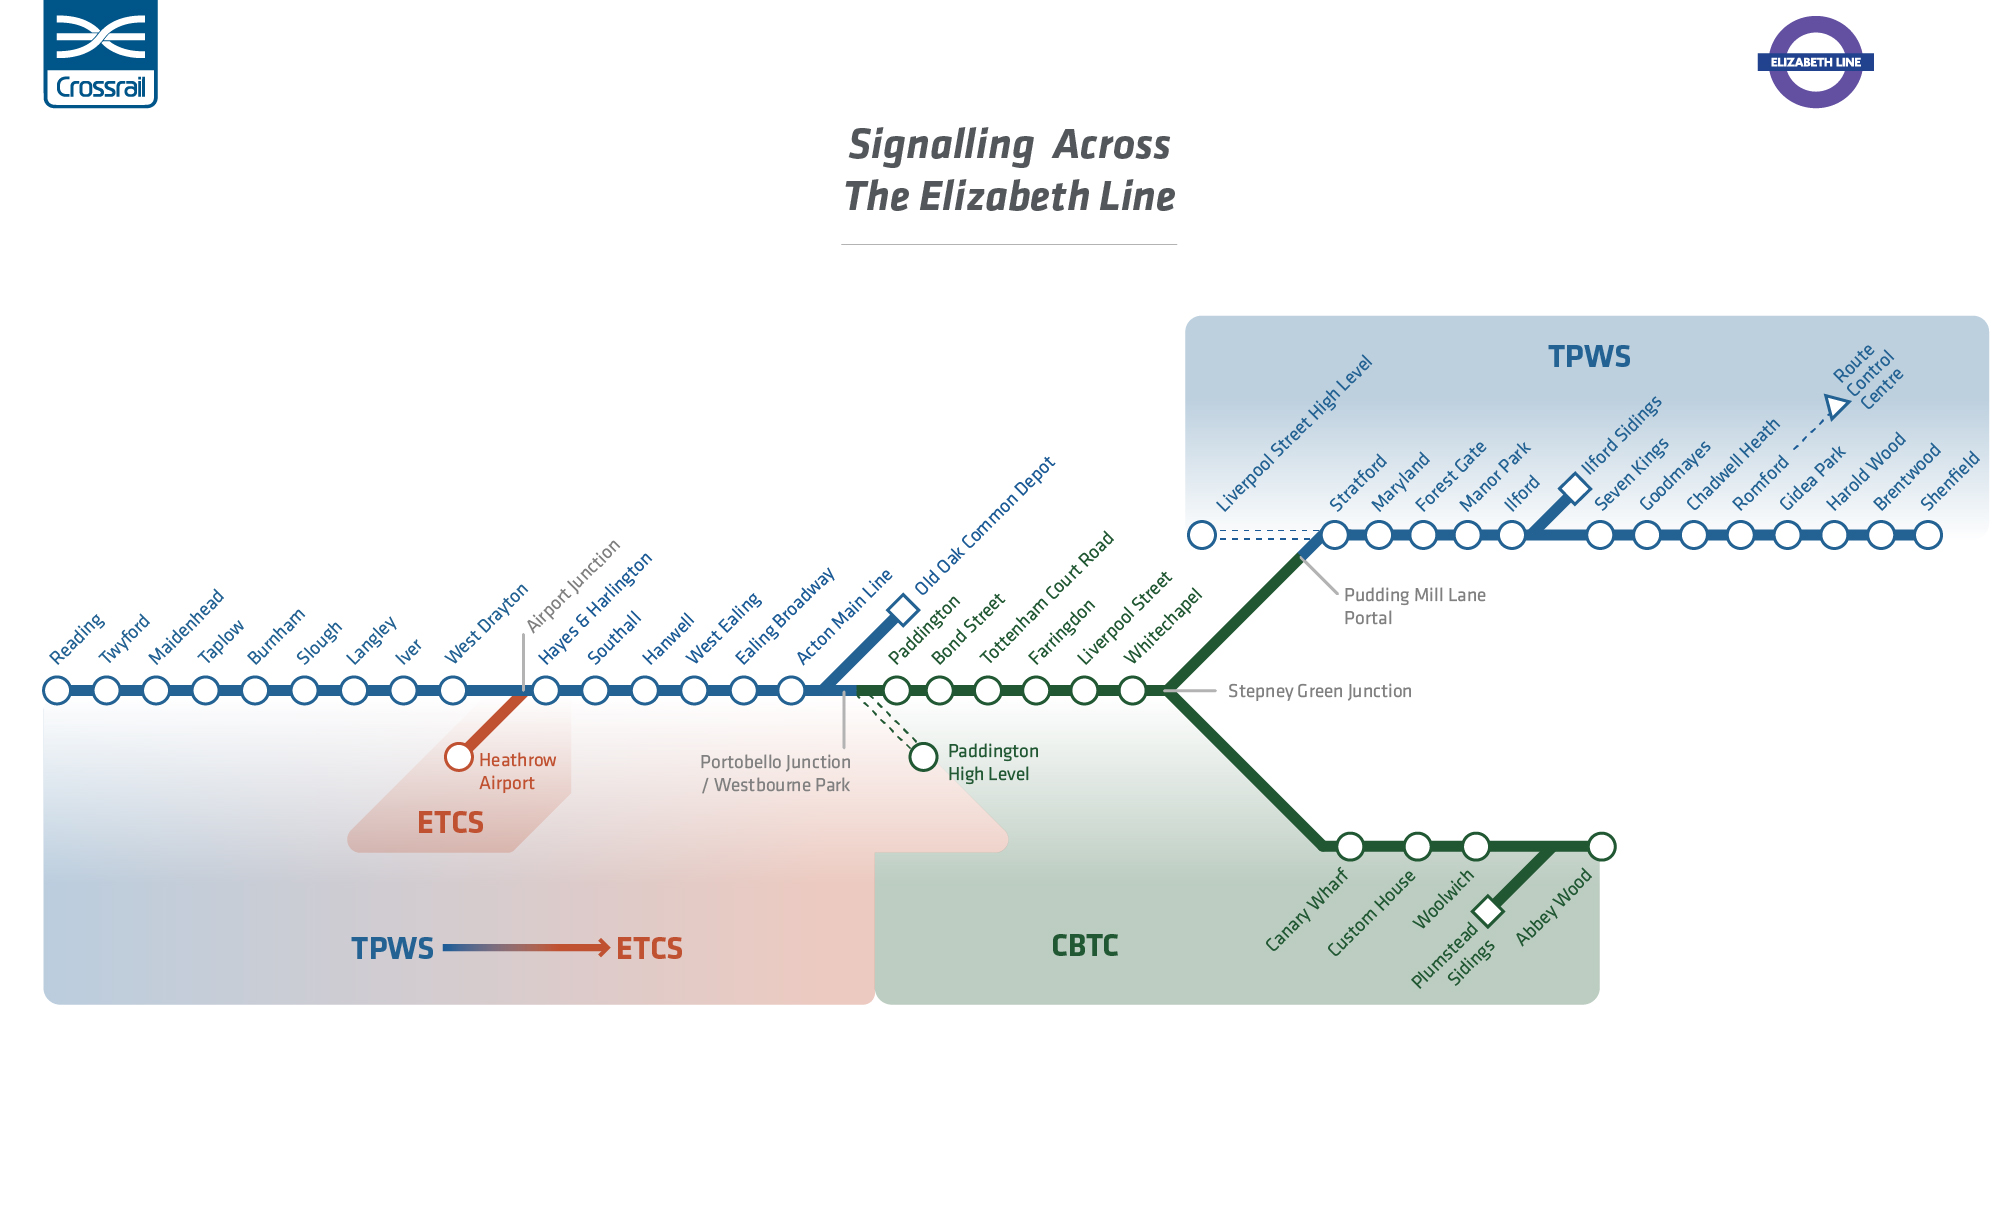 Signalling Across the Elizabeth Line (2)